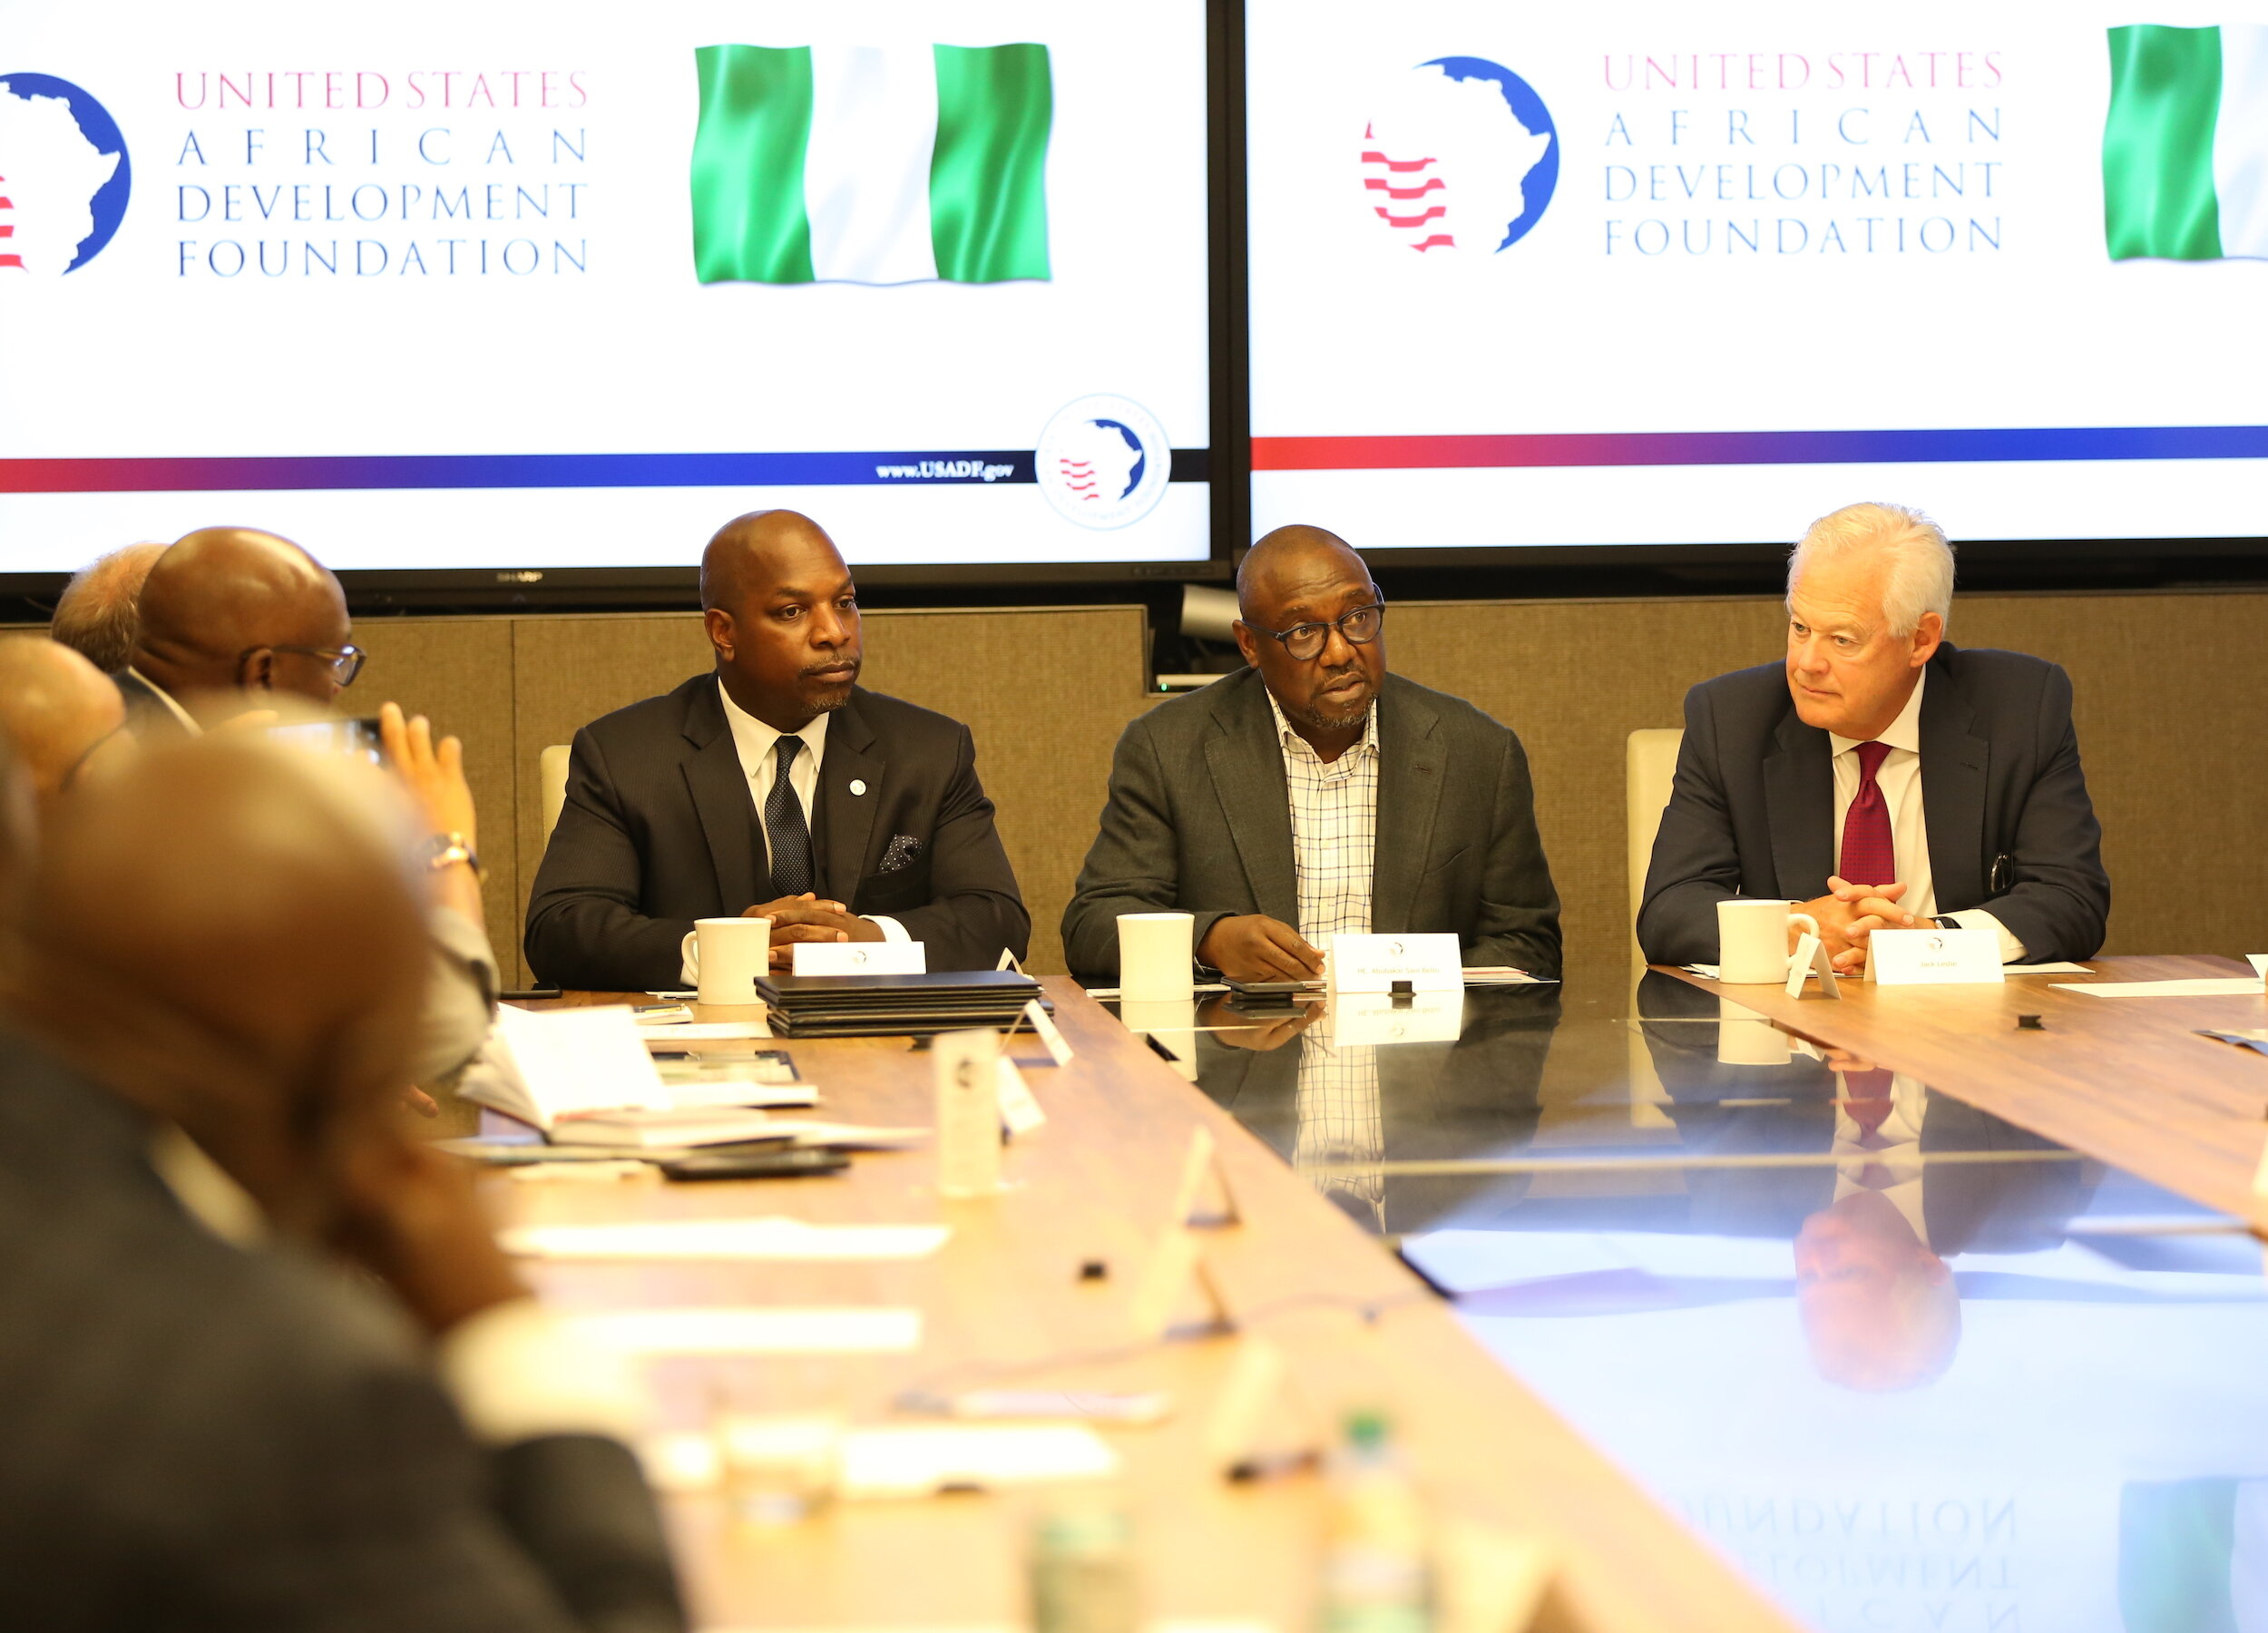 Leaders from USADF and Niger State Government held a meeting in New York City to make their partnership agreement official.